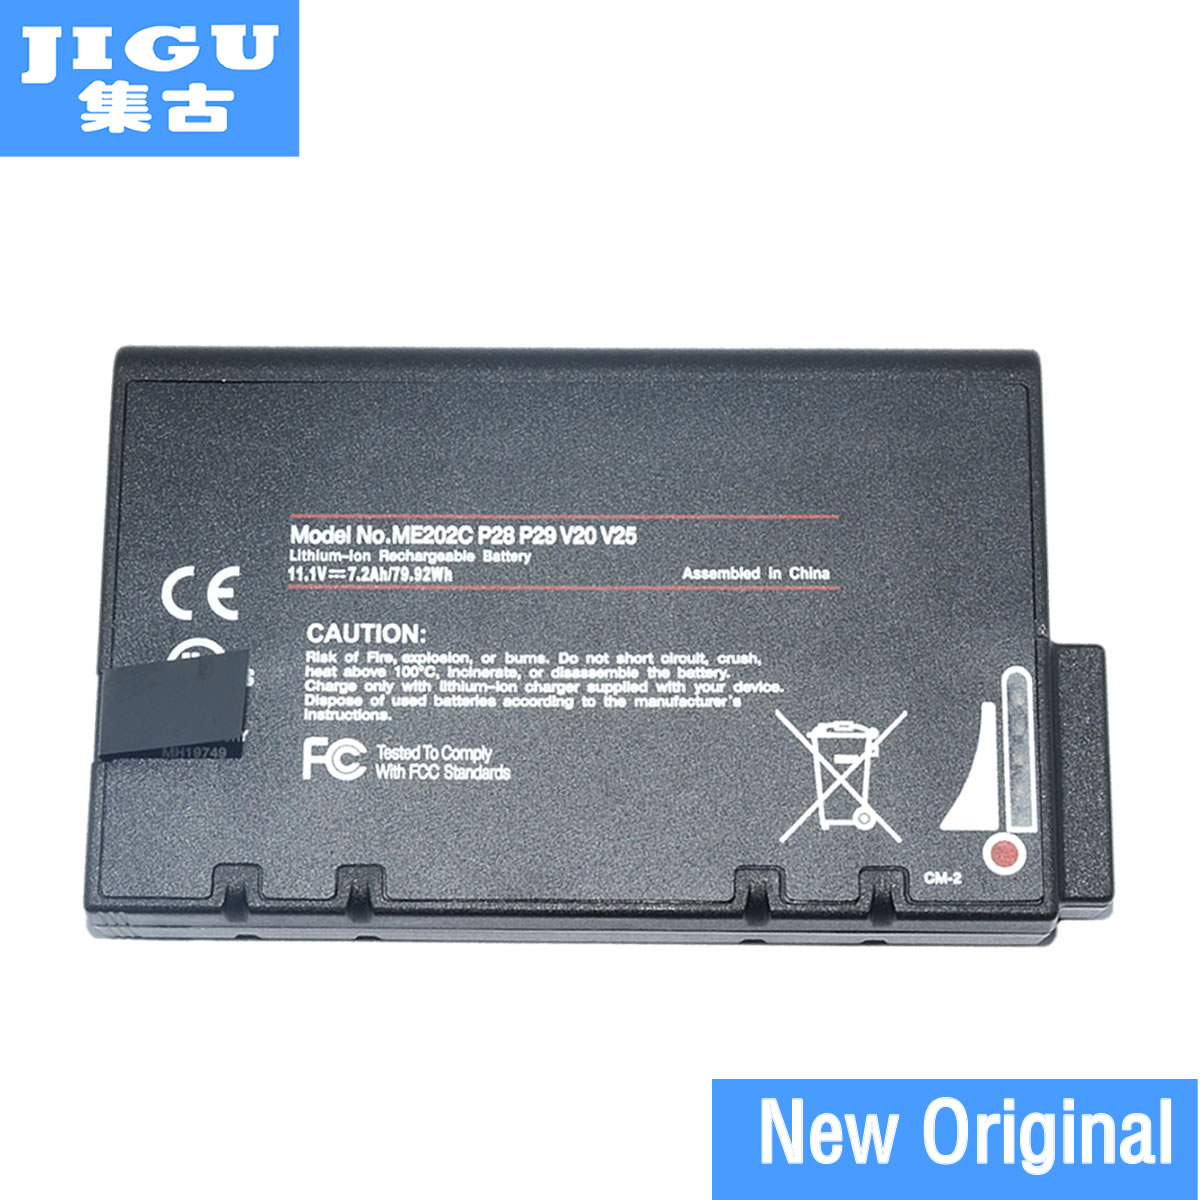 best getac laptop list and get free shipping - 8eiajkm9